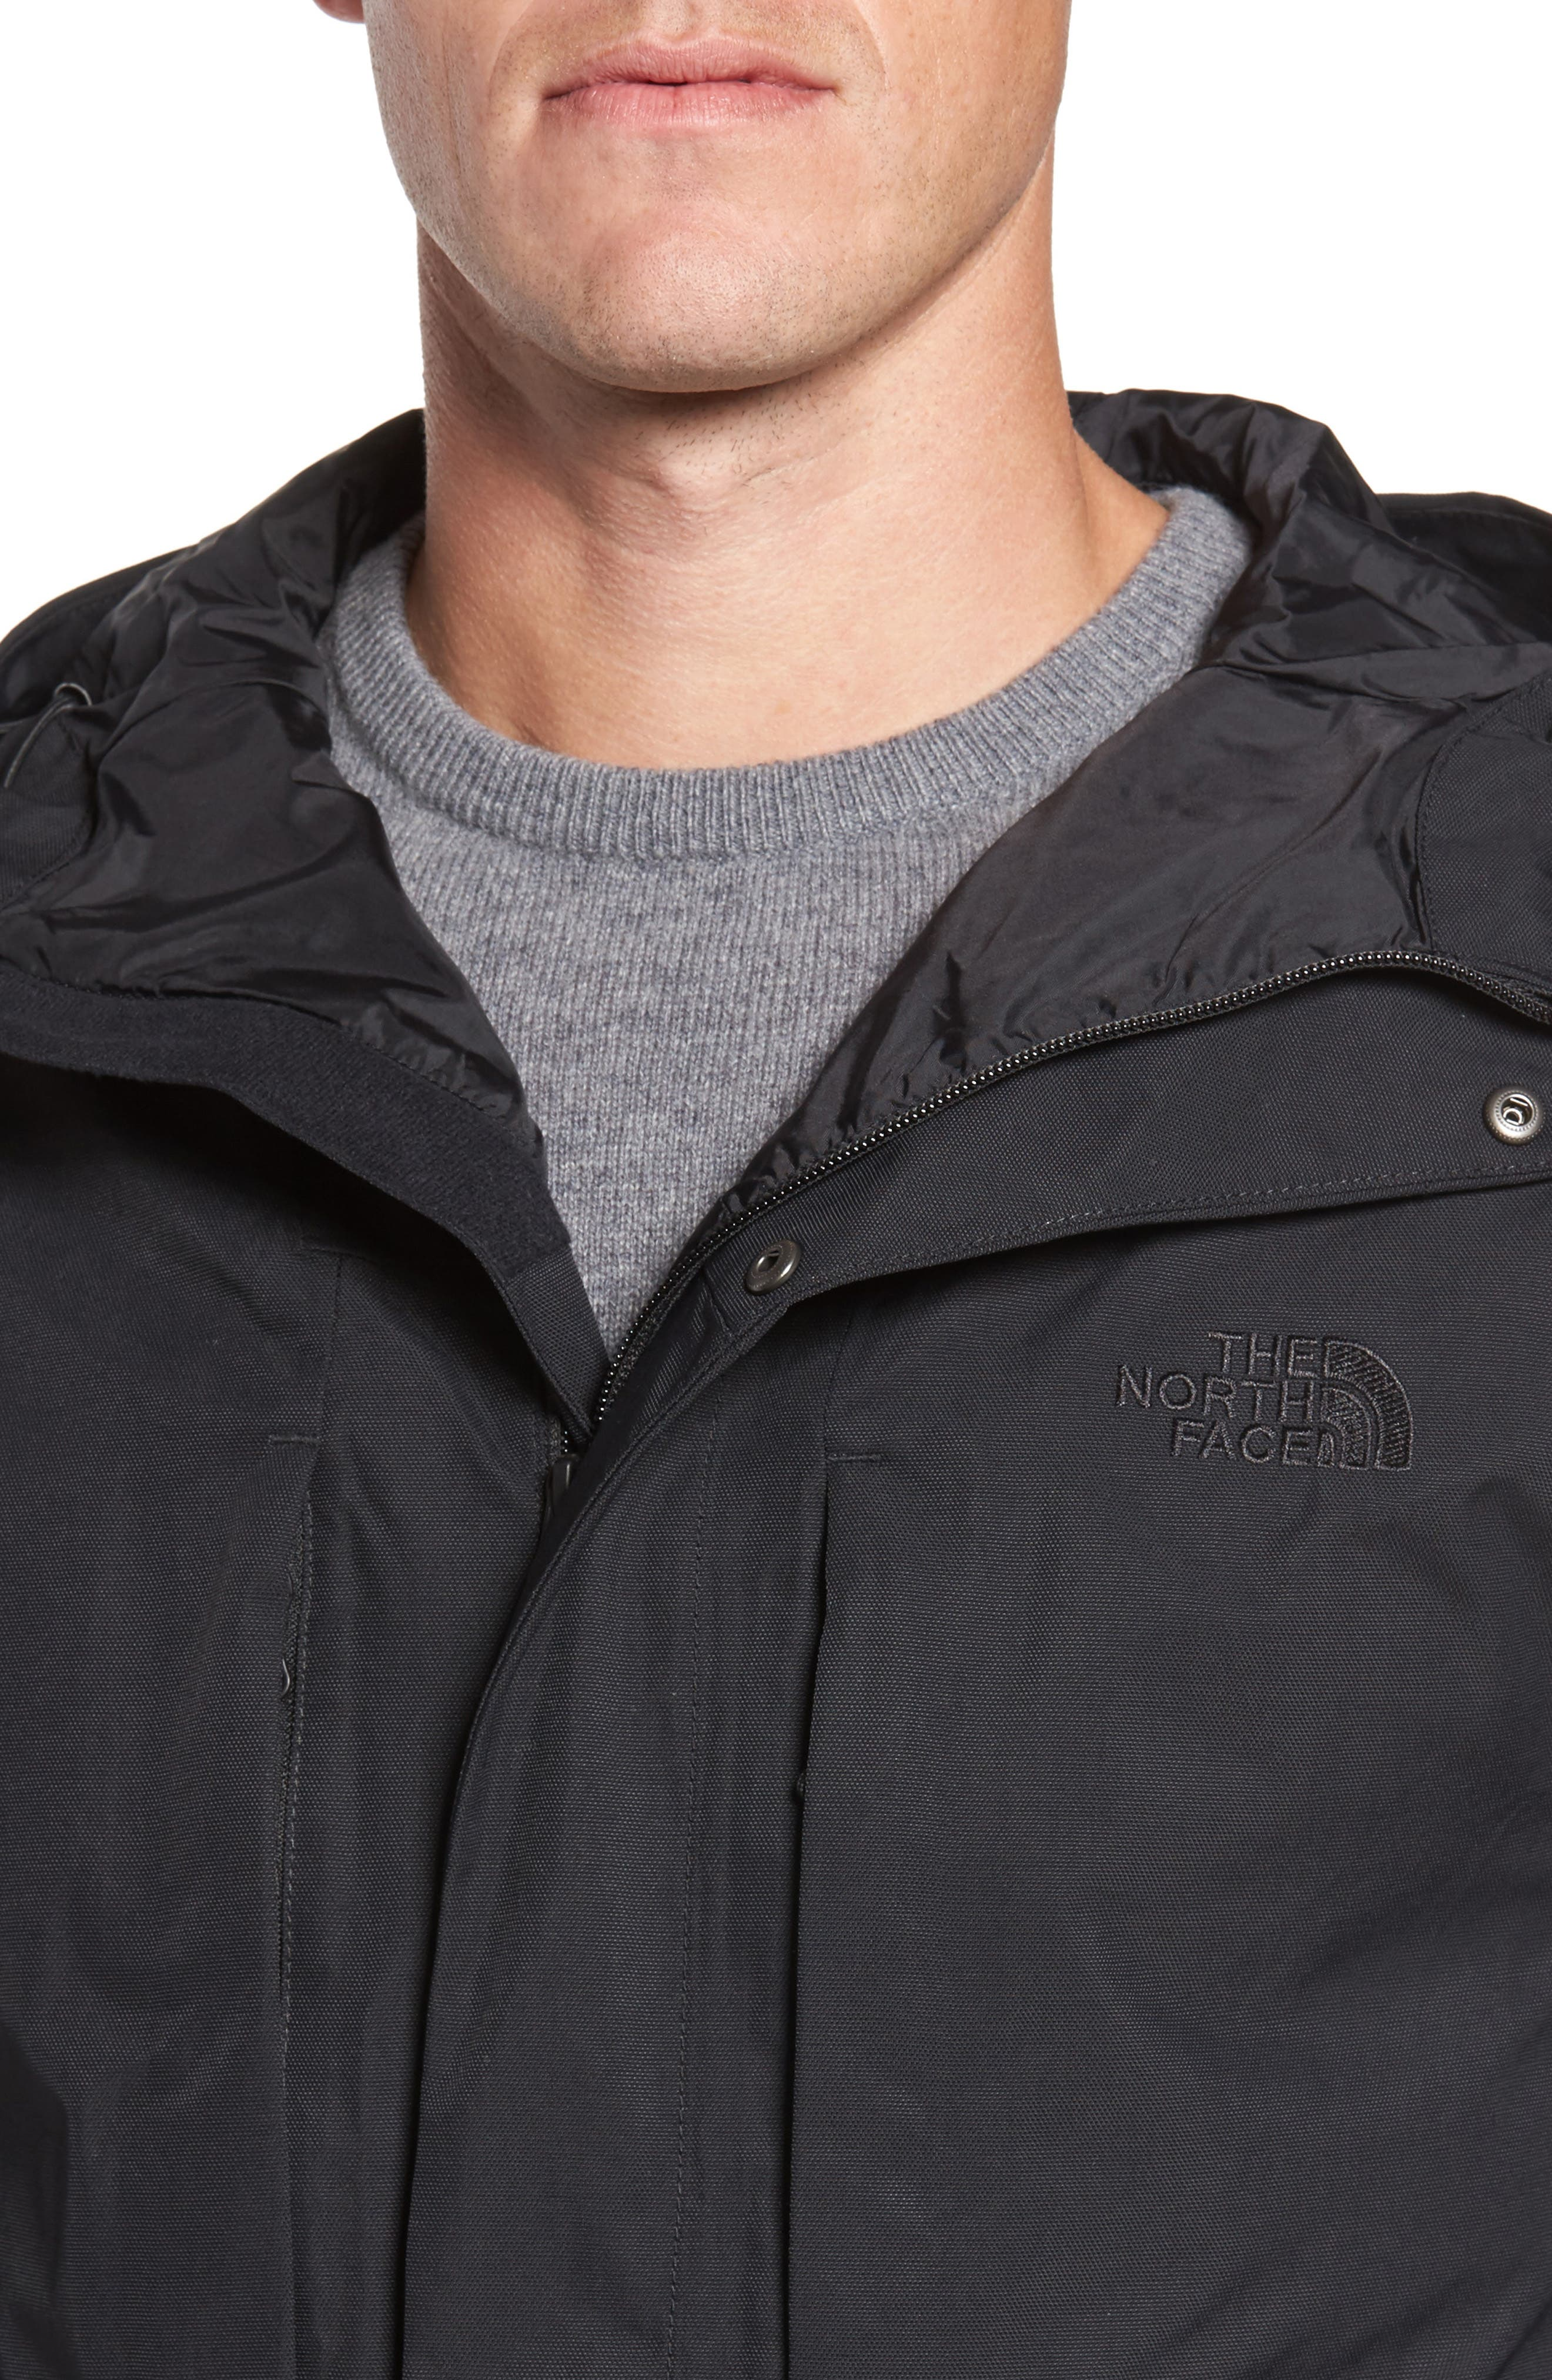 THE NORTH FACE, El Misti Trench II Hooded Jacket, Alternate thumbnail 5, color, 001